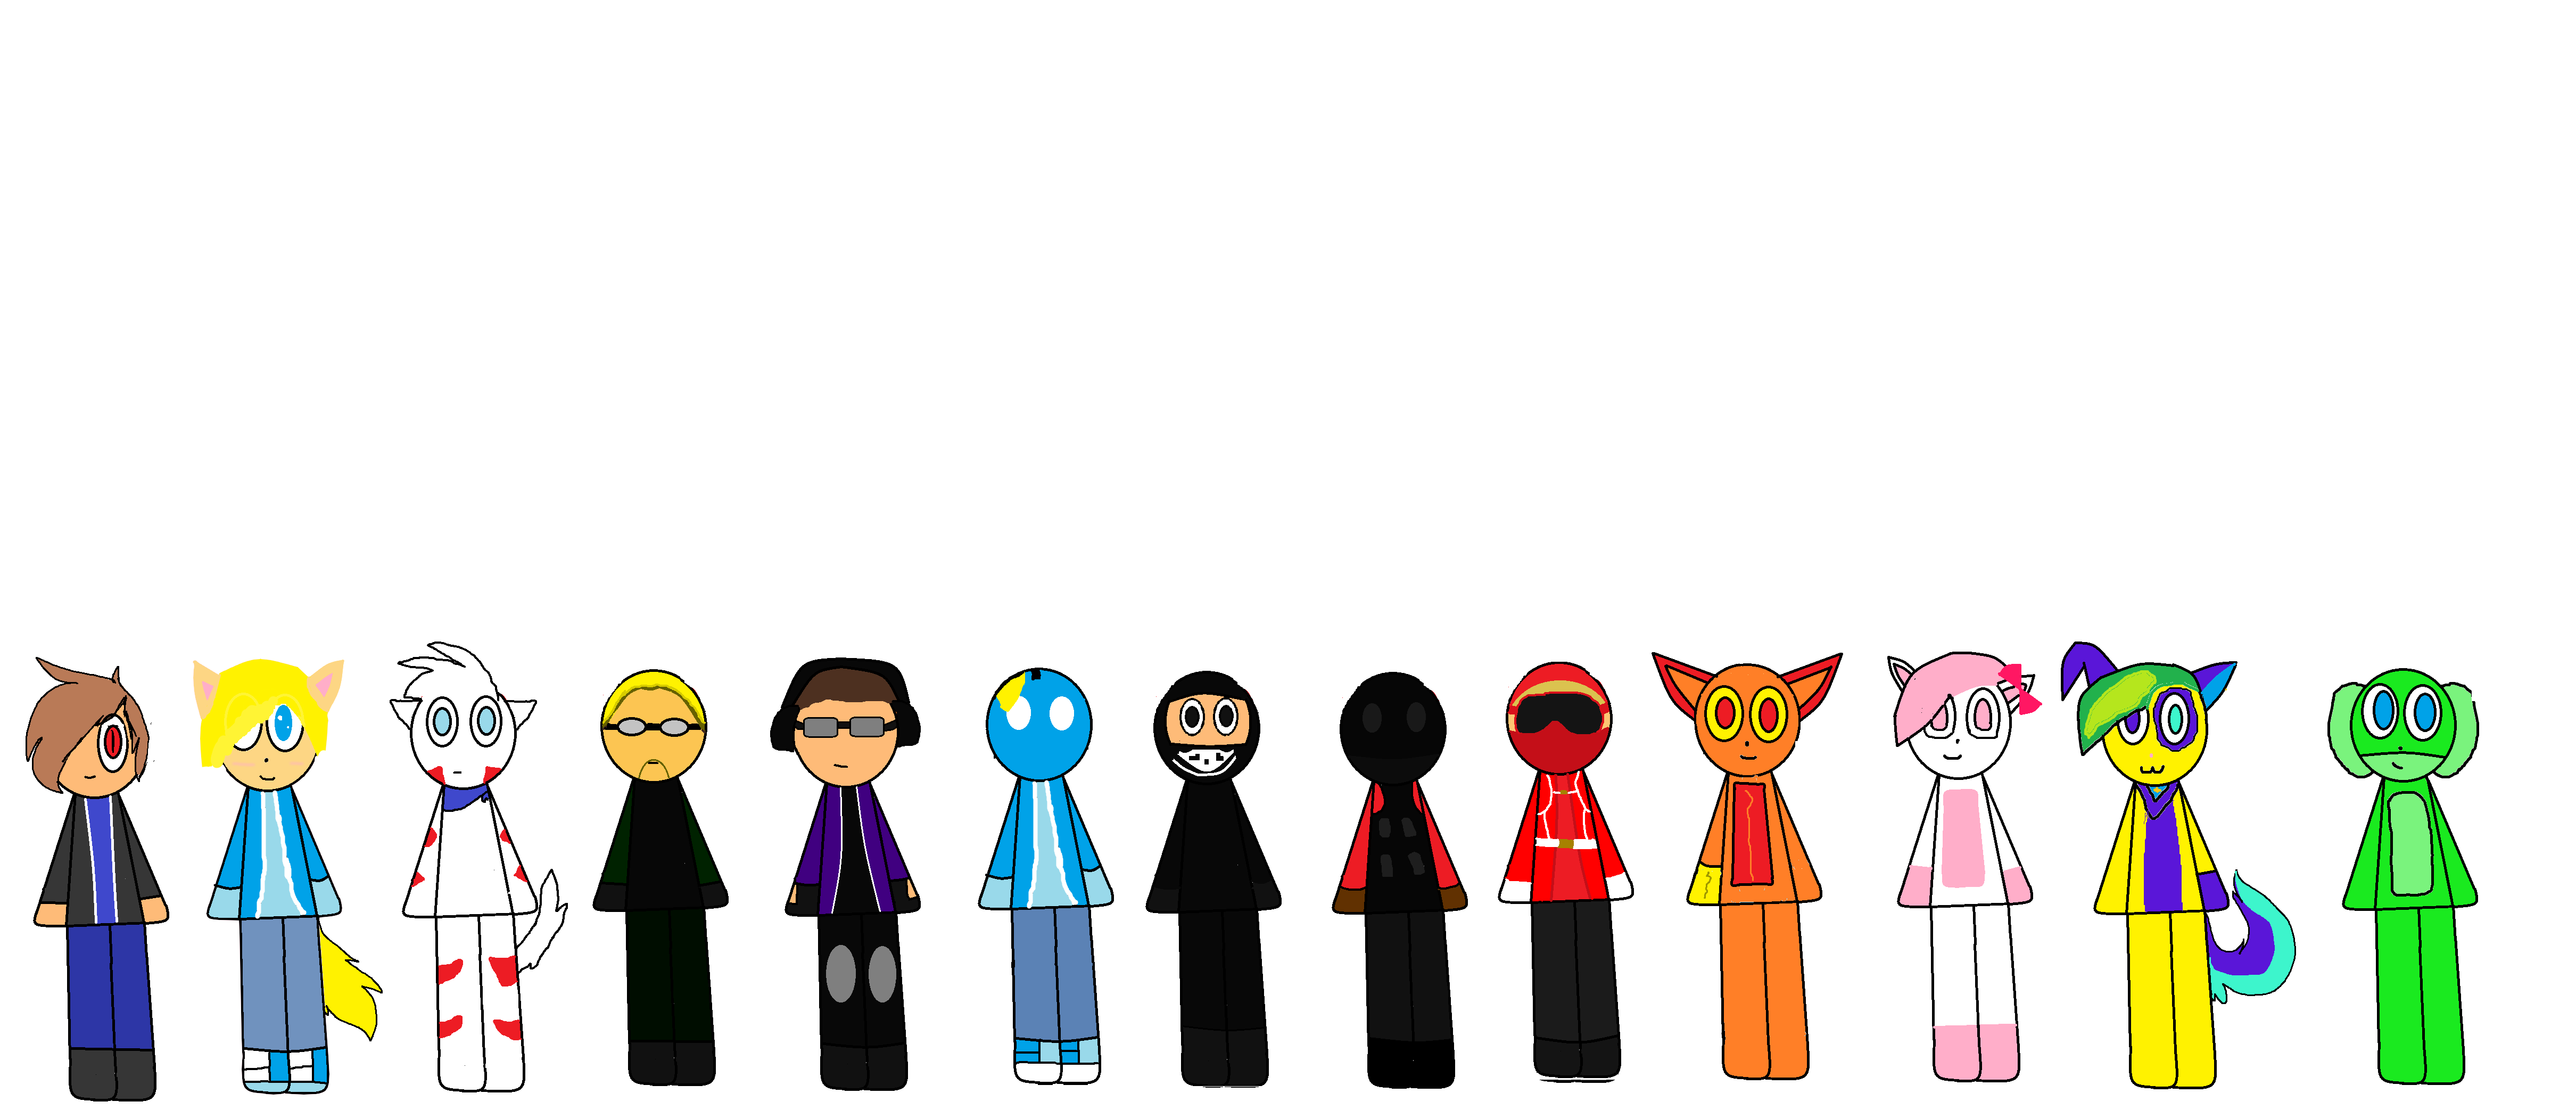 Anyone want there character drawn? Team_arrowman_by_thedillbot123-dalka16